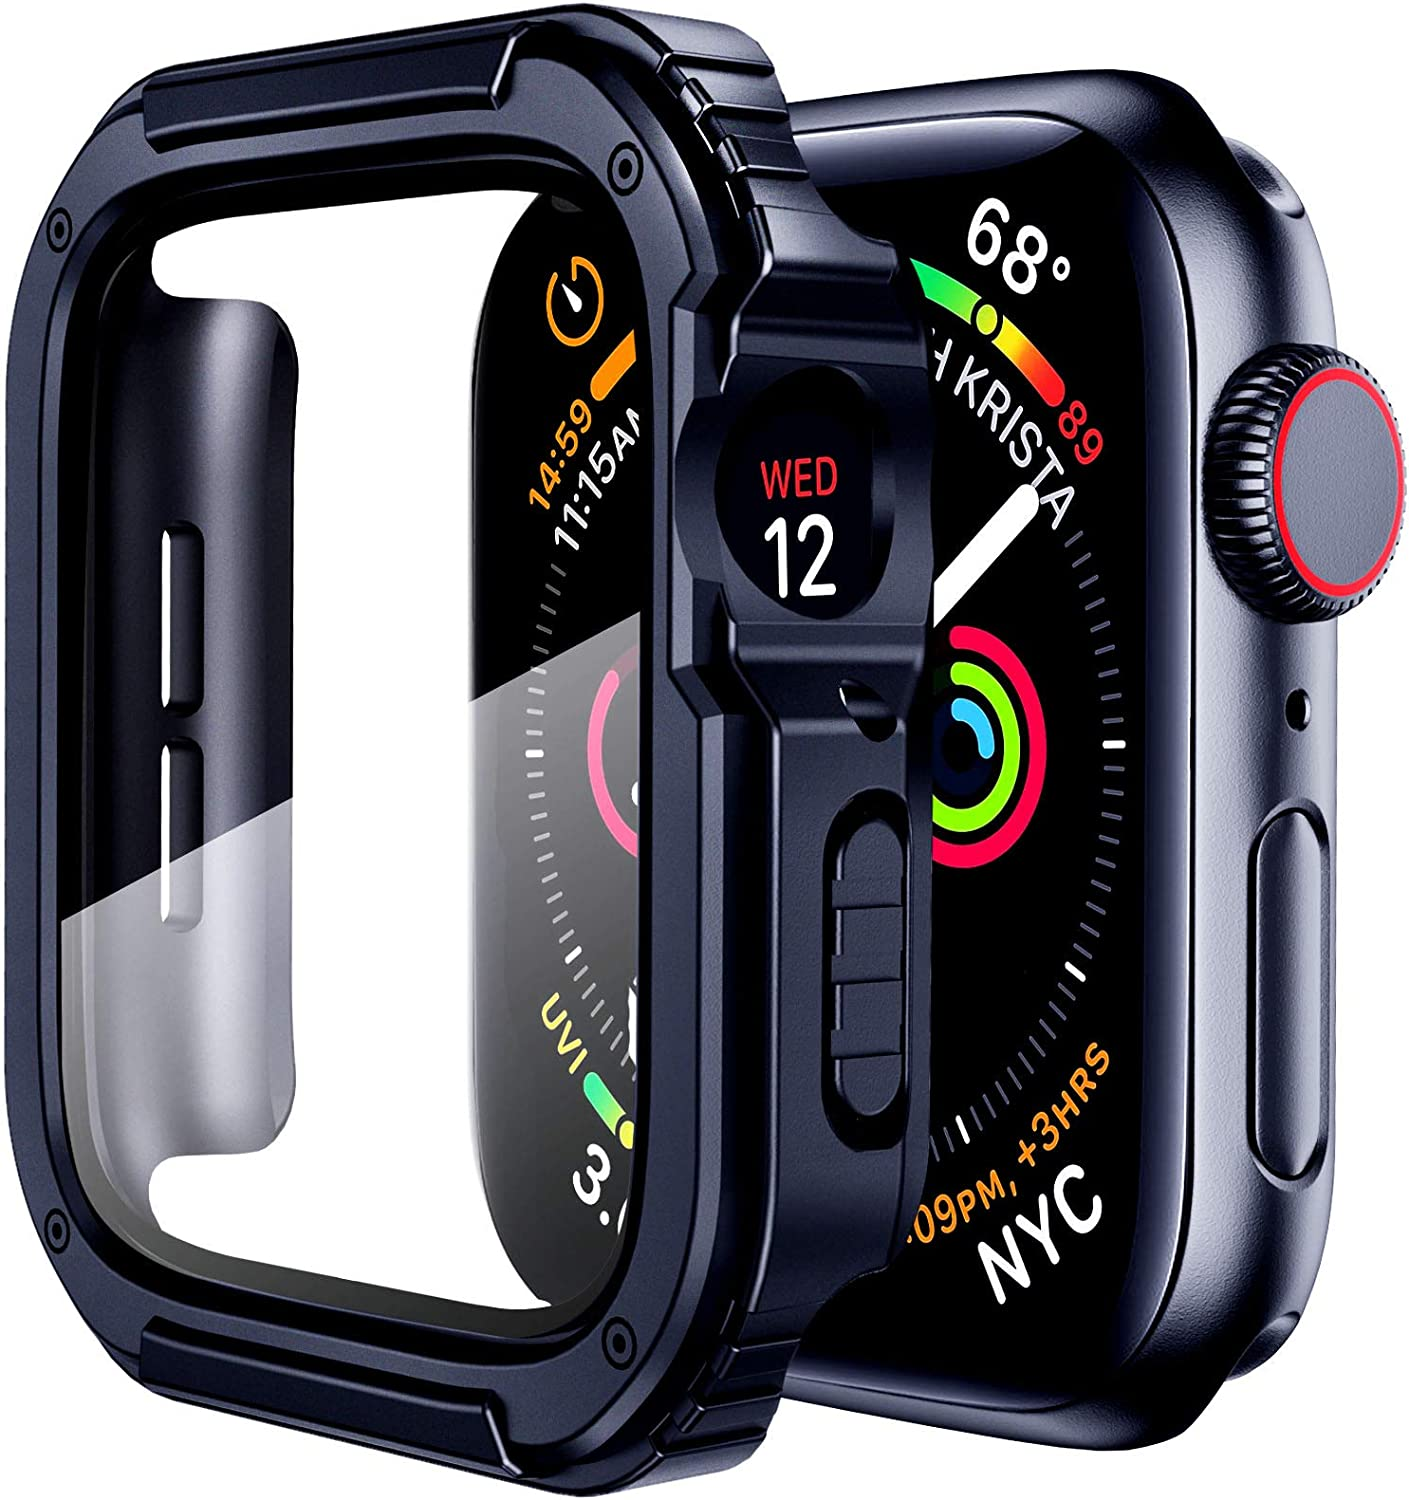 Mesime Rugged Case Cover Compatible for Apple Watch 44mm with Tempered Glass Screen for iwatch Series 4 5 6 SE Protective Bumper Accessories Hard Case for Women Men -Blue